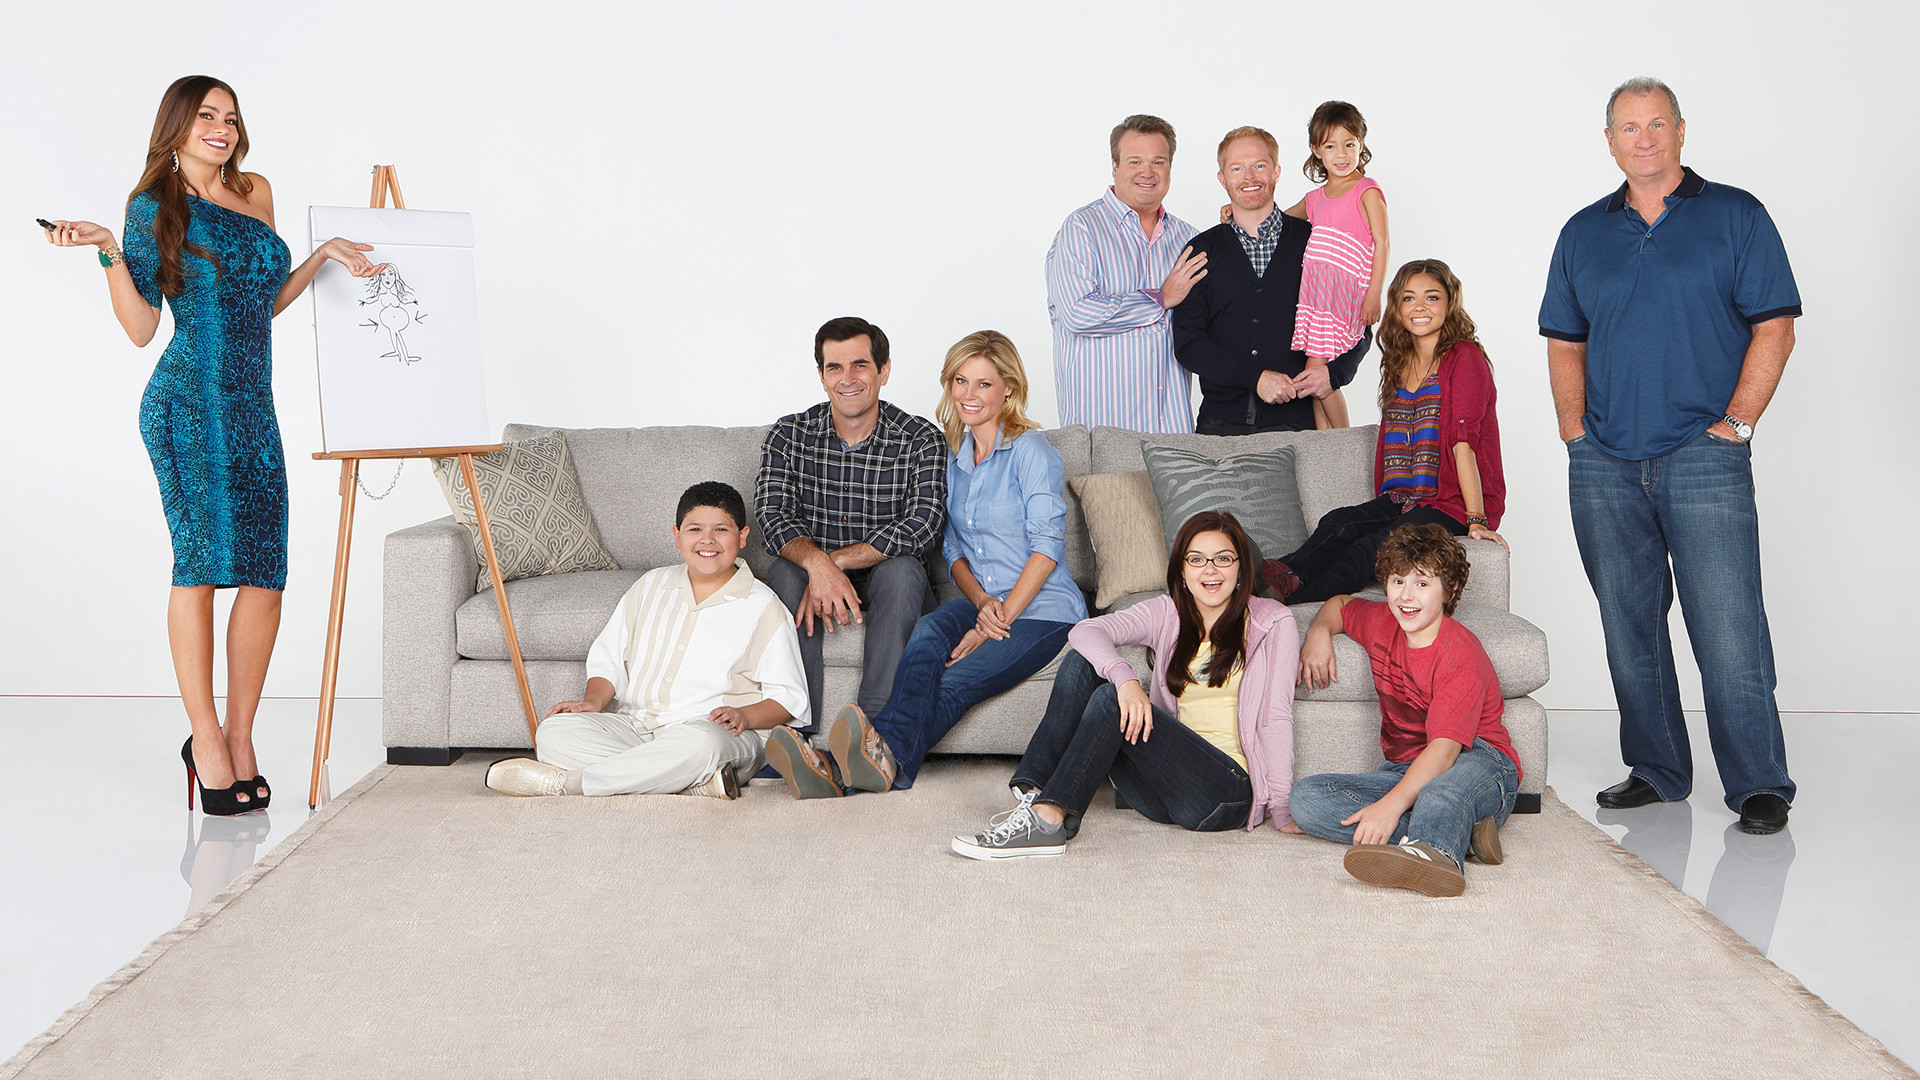 modern family wallpapers pictures images